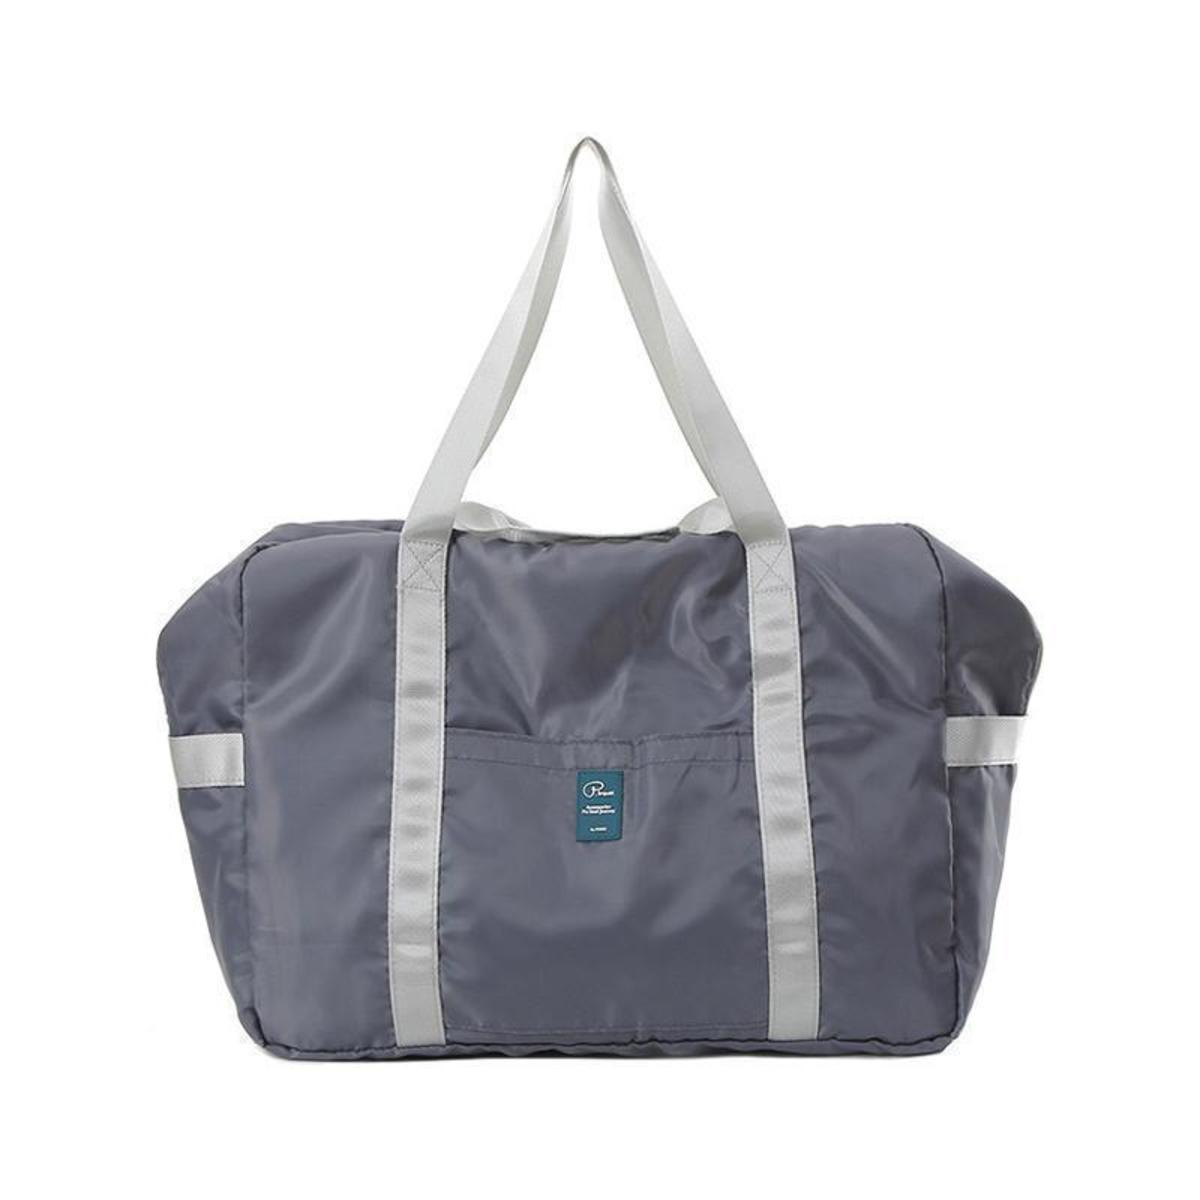 P. Travel Folding Travel Storage Bag Thicken and Increase - Gray